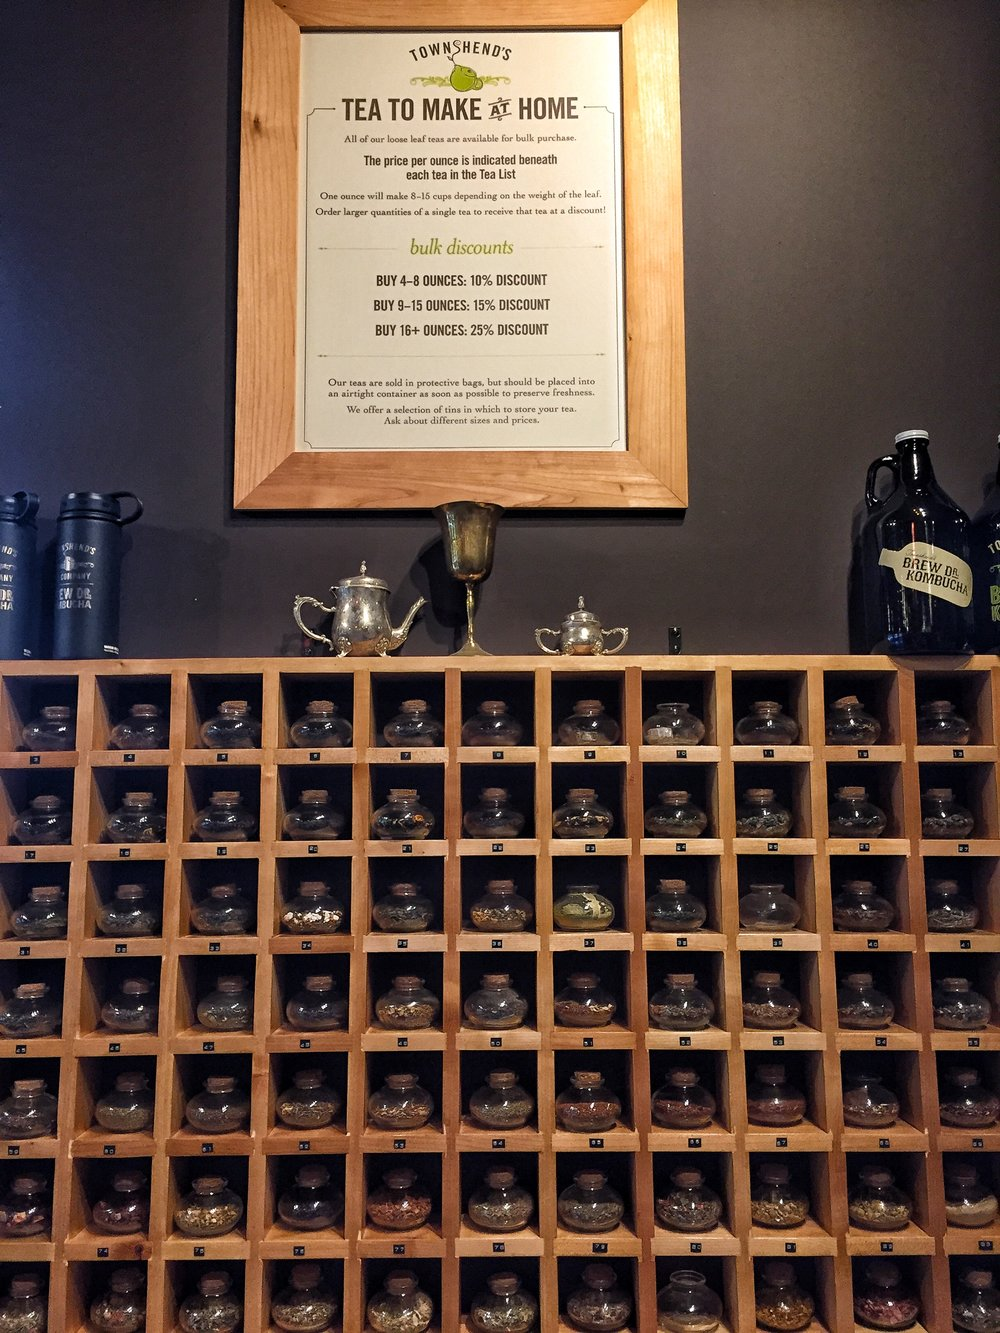 Townshends Tea with a huge selection of loose tea to enjoy in the cafe or to take home, if for some reason you are tired of coffee.